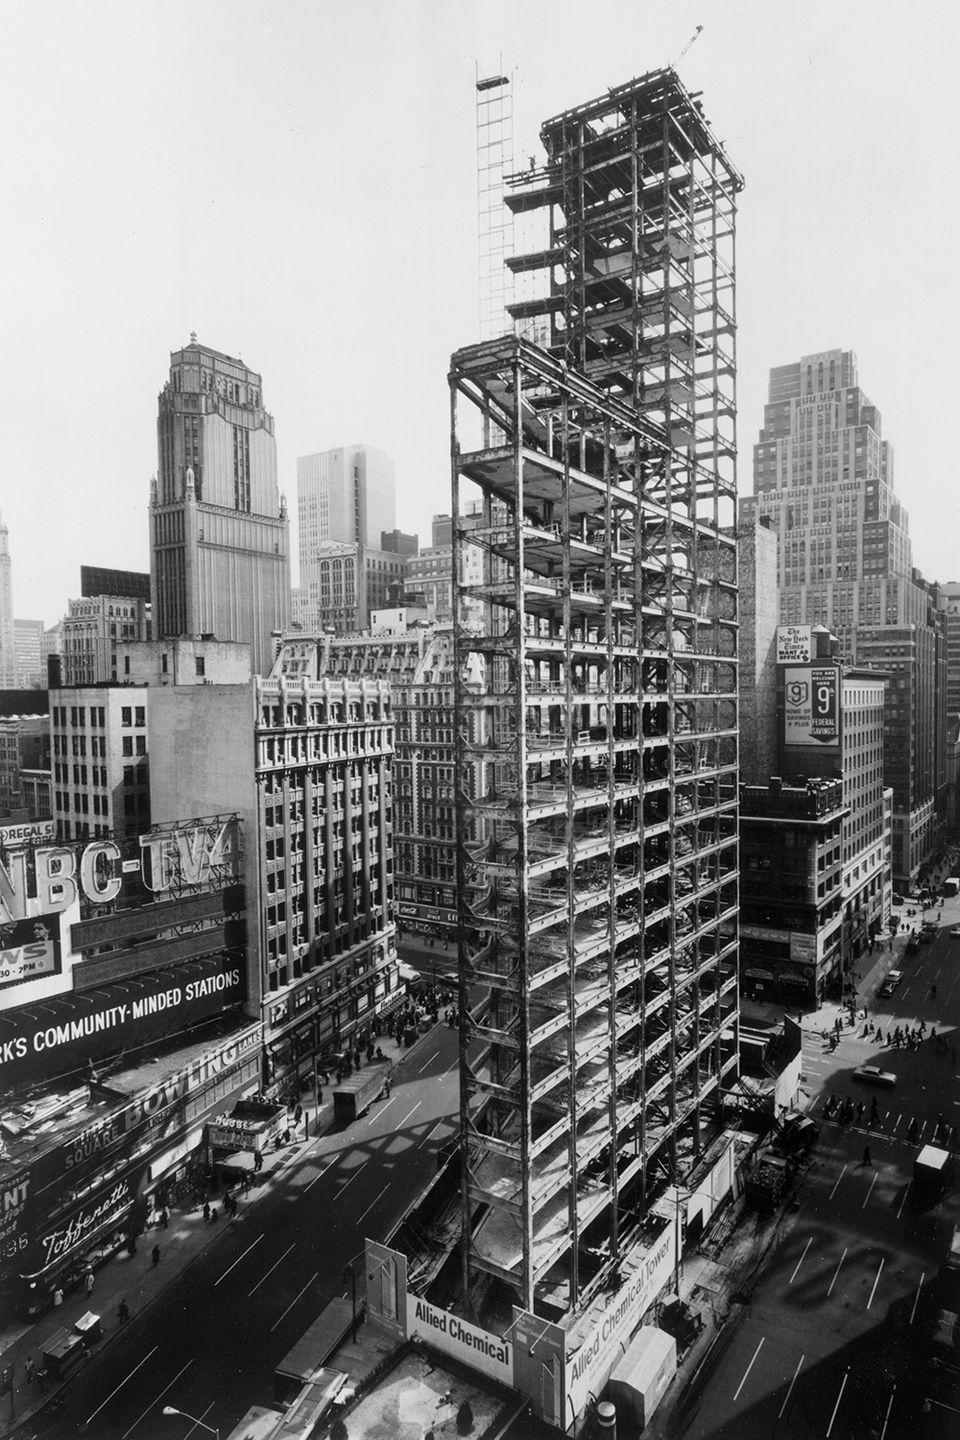 <p>Full-length view of the Allied Chemical Tower reduced to its steel framework during renovation in Times Square.</p>